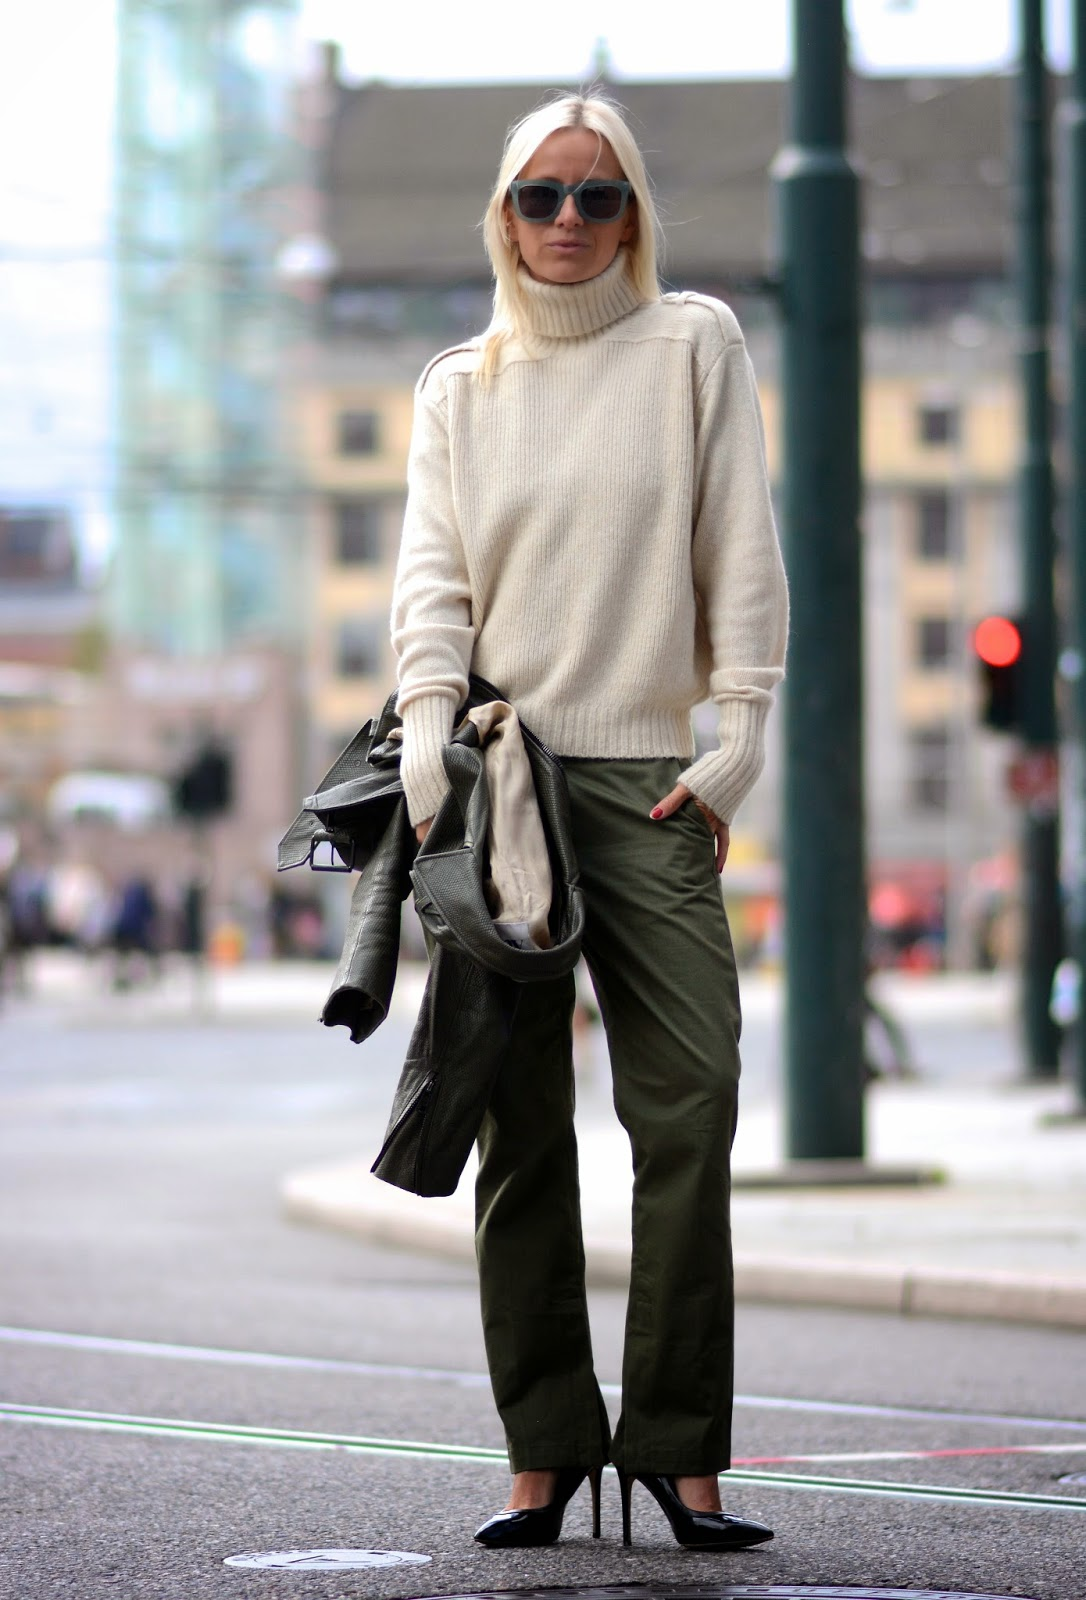 Celine Aagaard is wearing a white long sleeved turtleneck, army green trousers and pumps